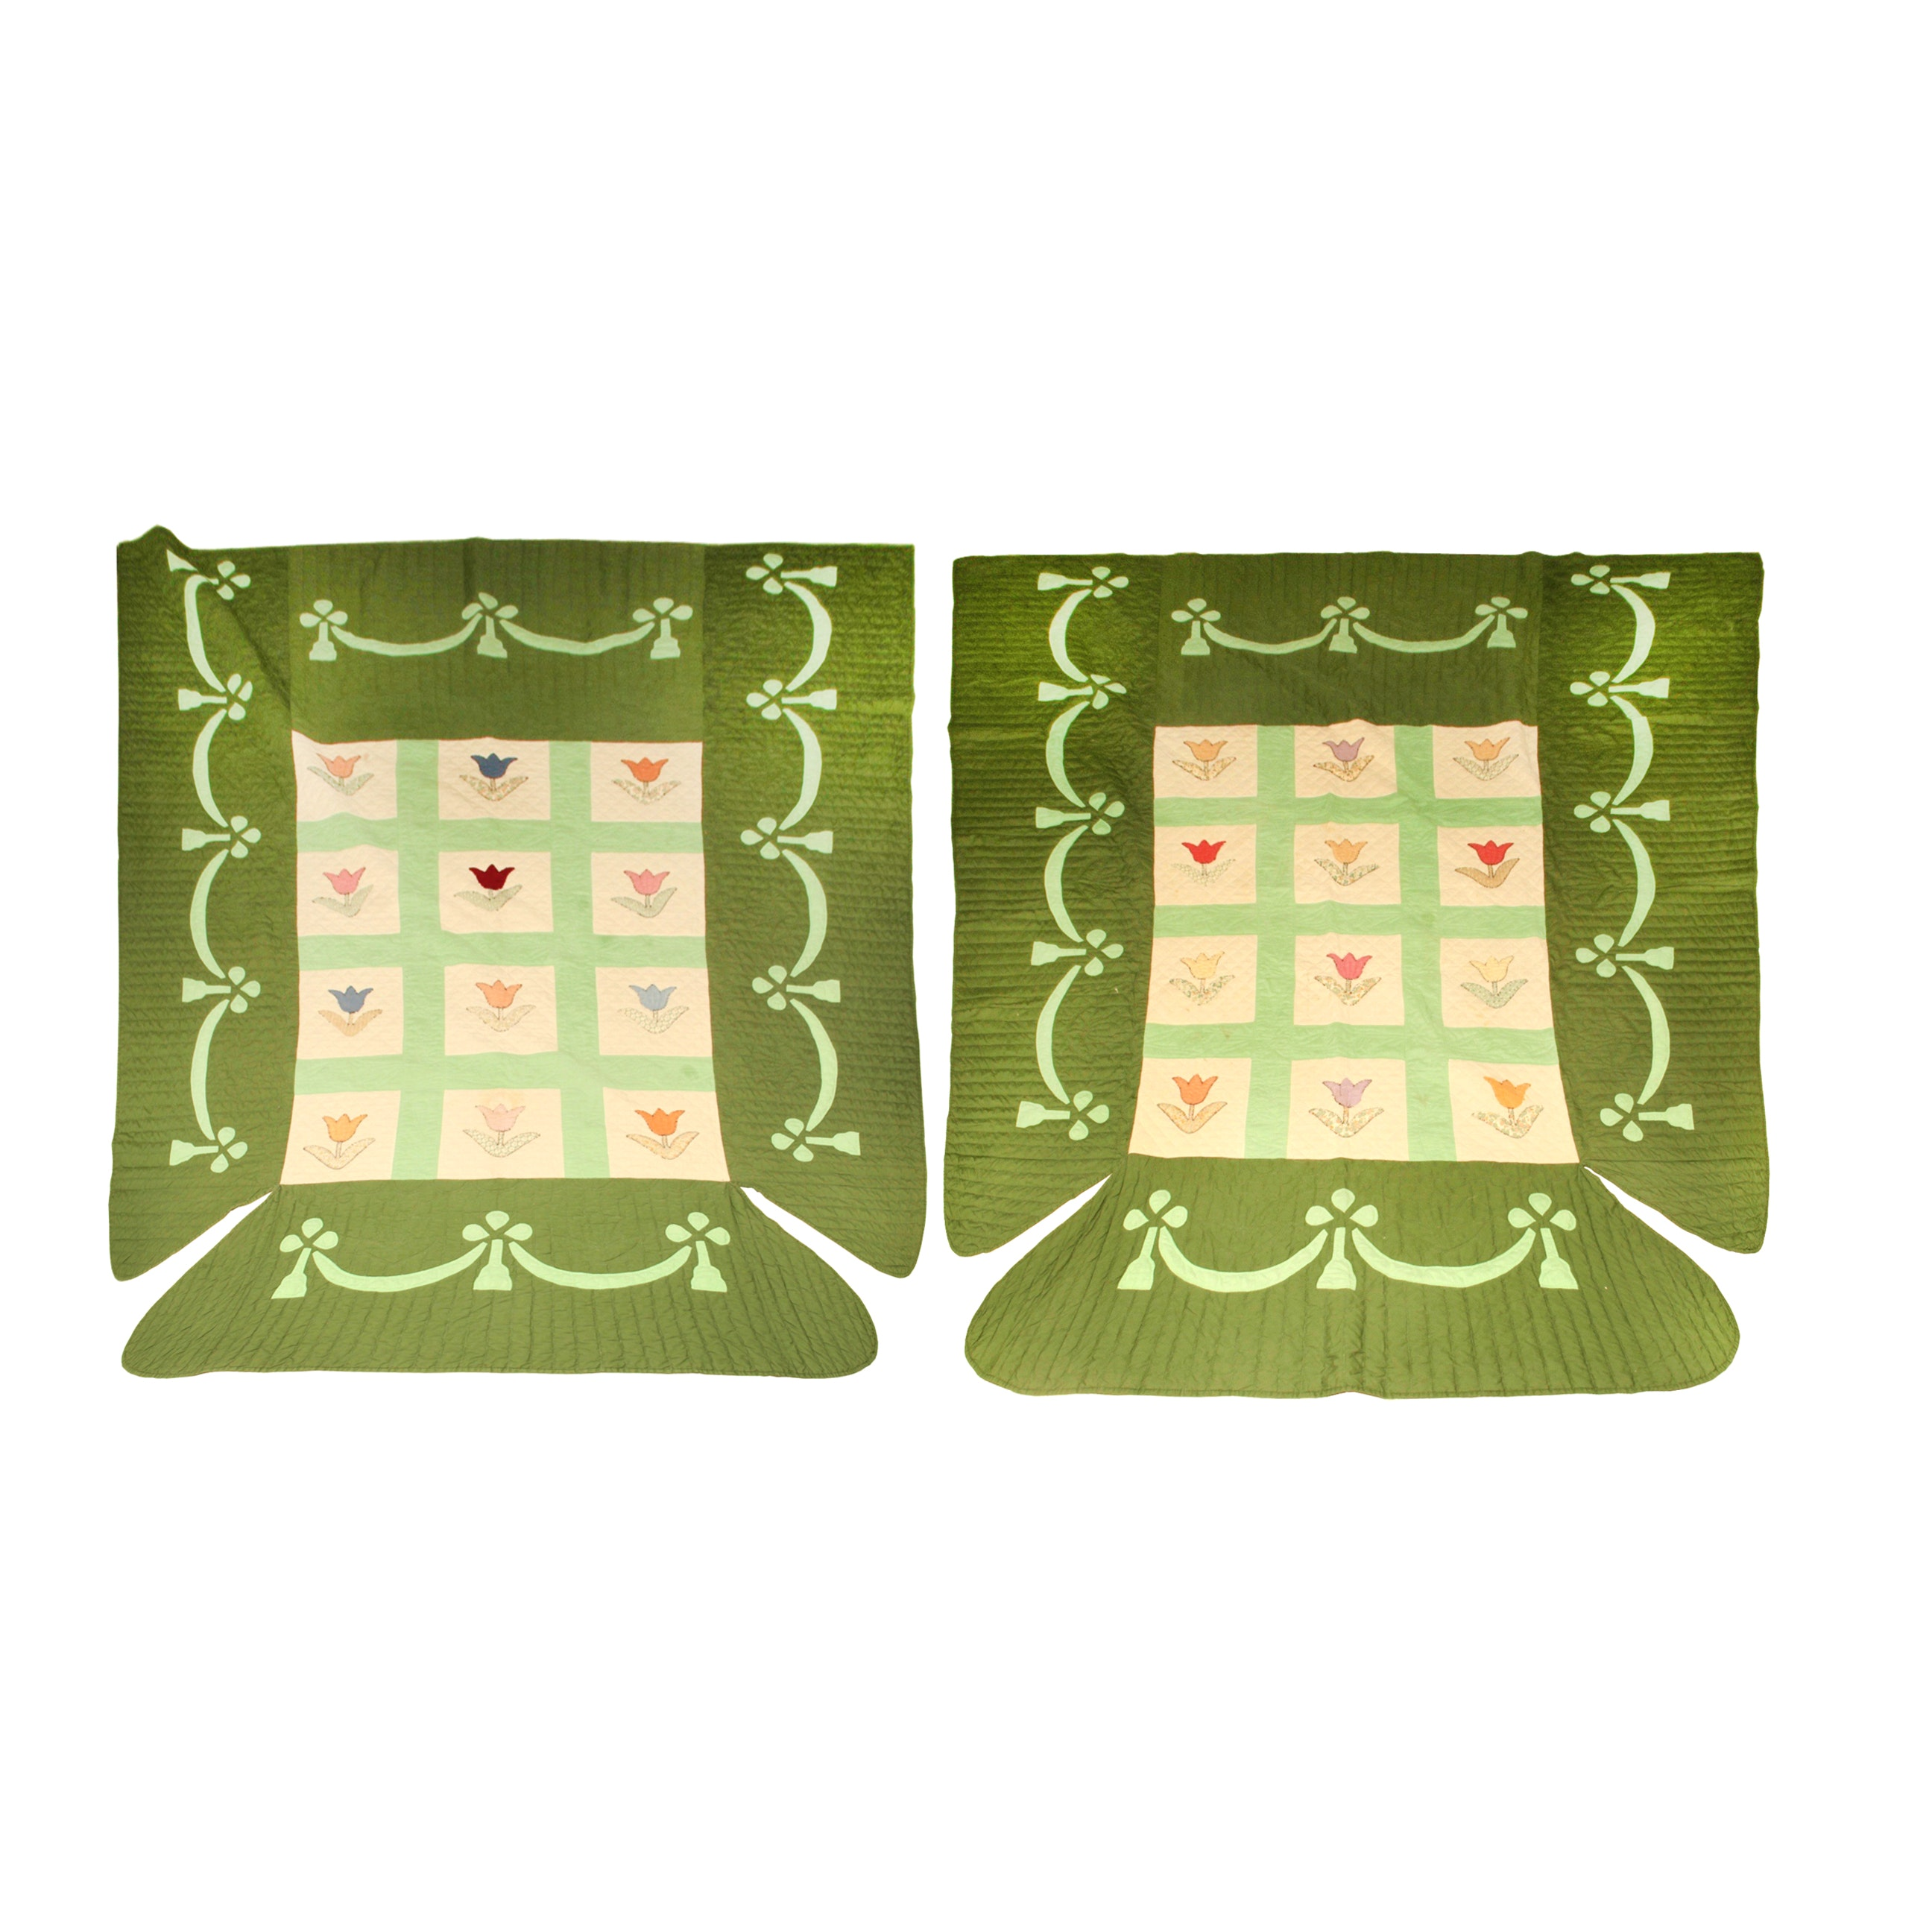 A Pair of Custom Hand Quilted Bed Spreads for a Poster Bed